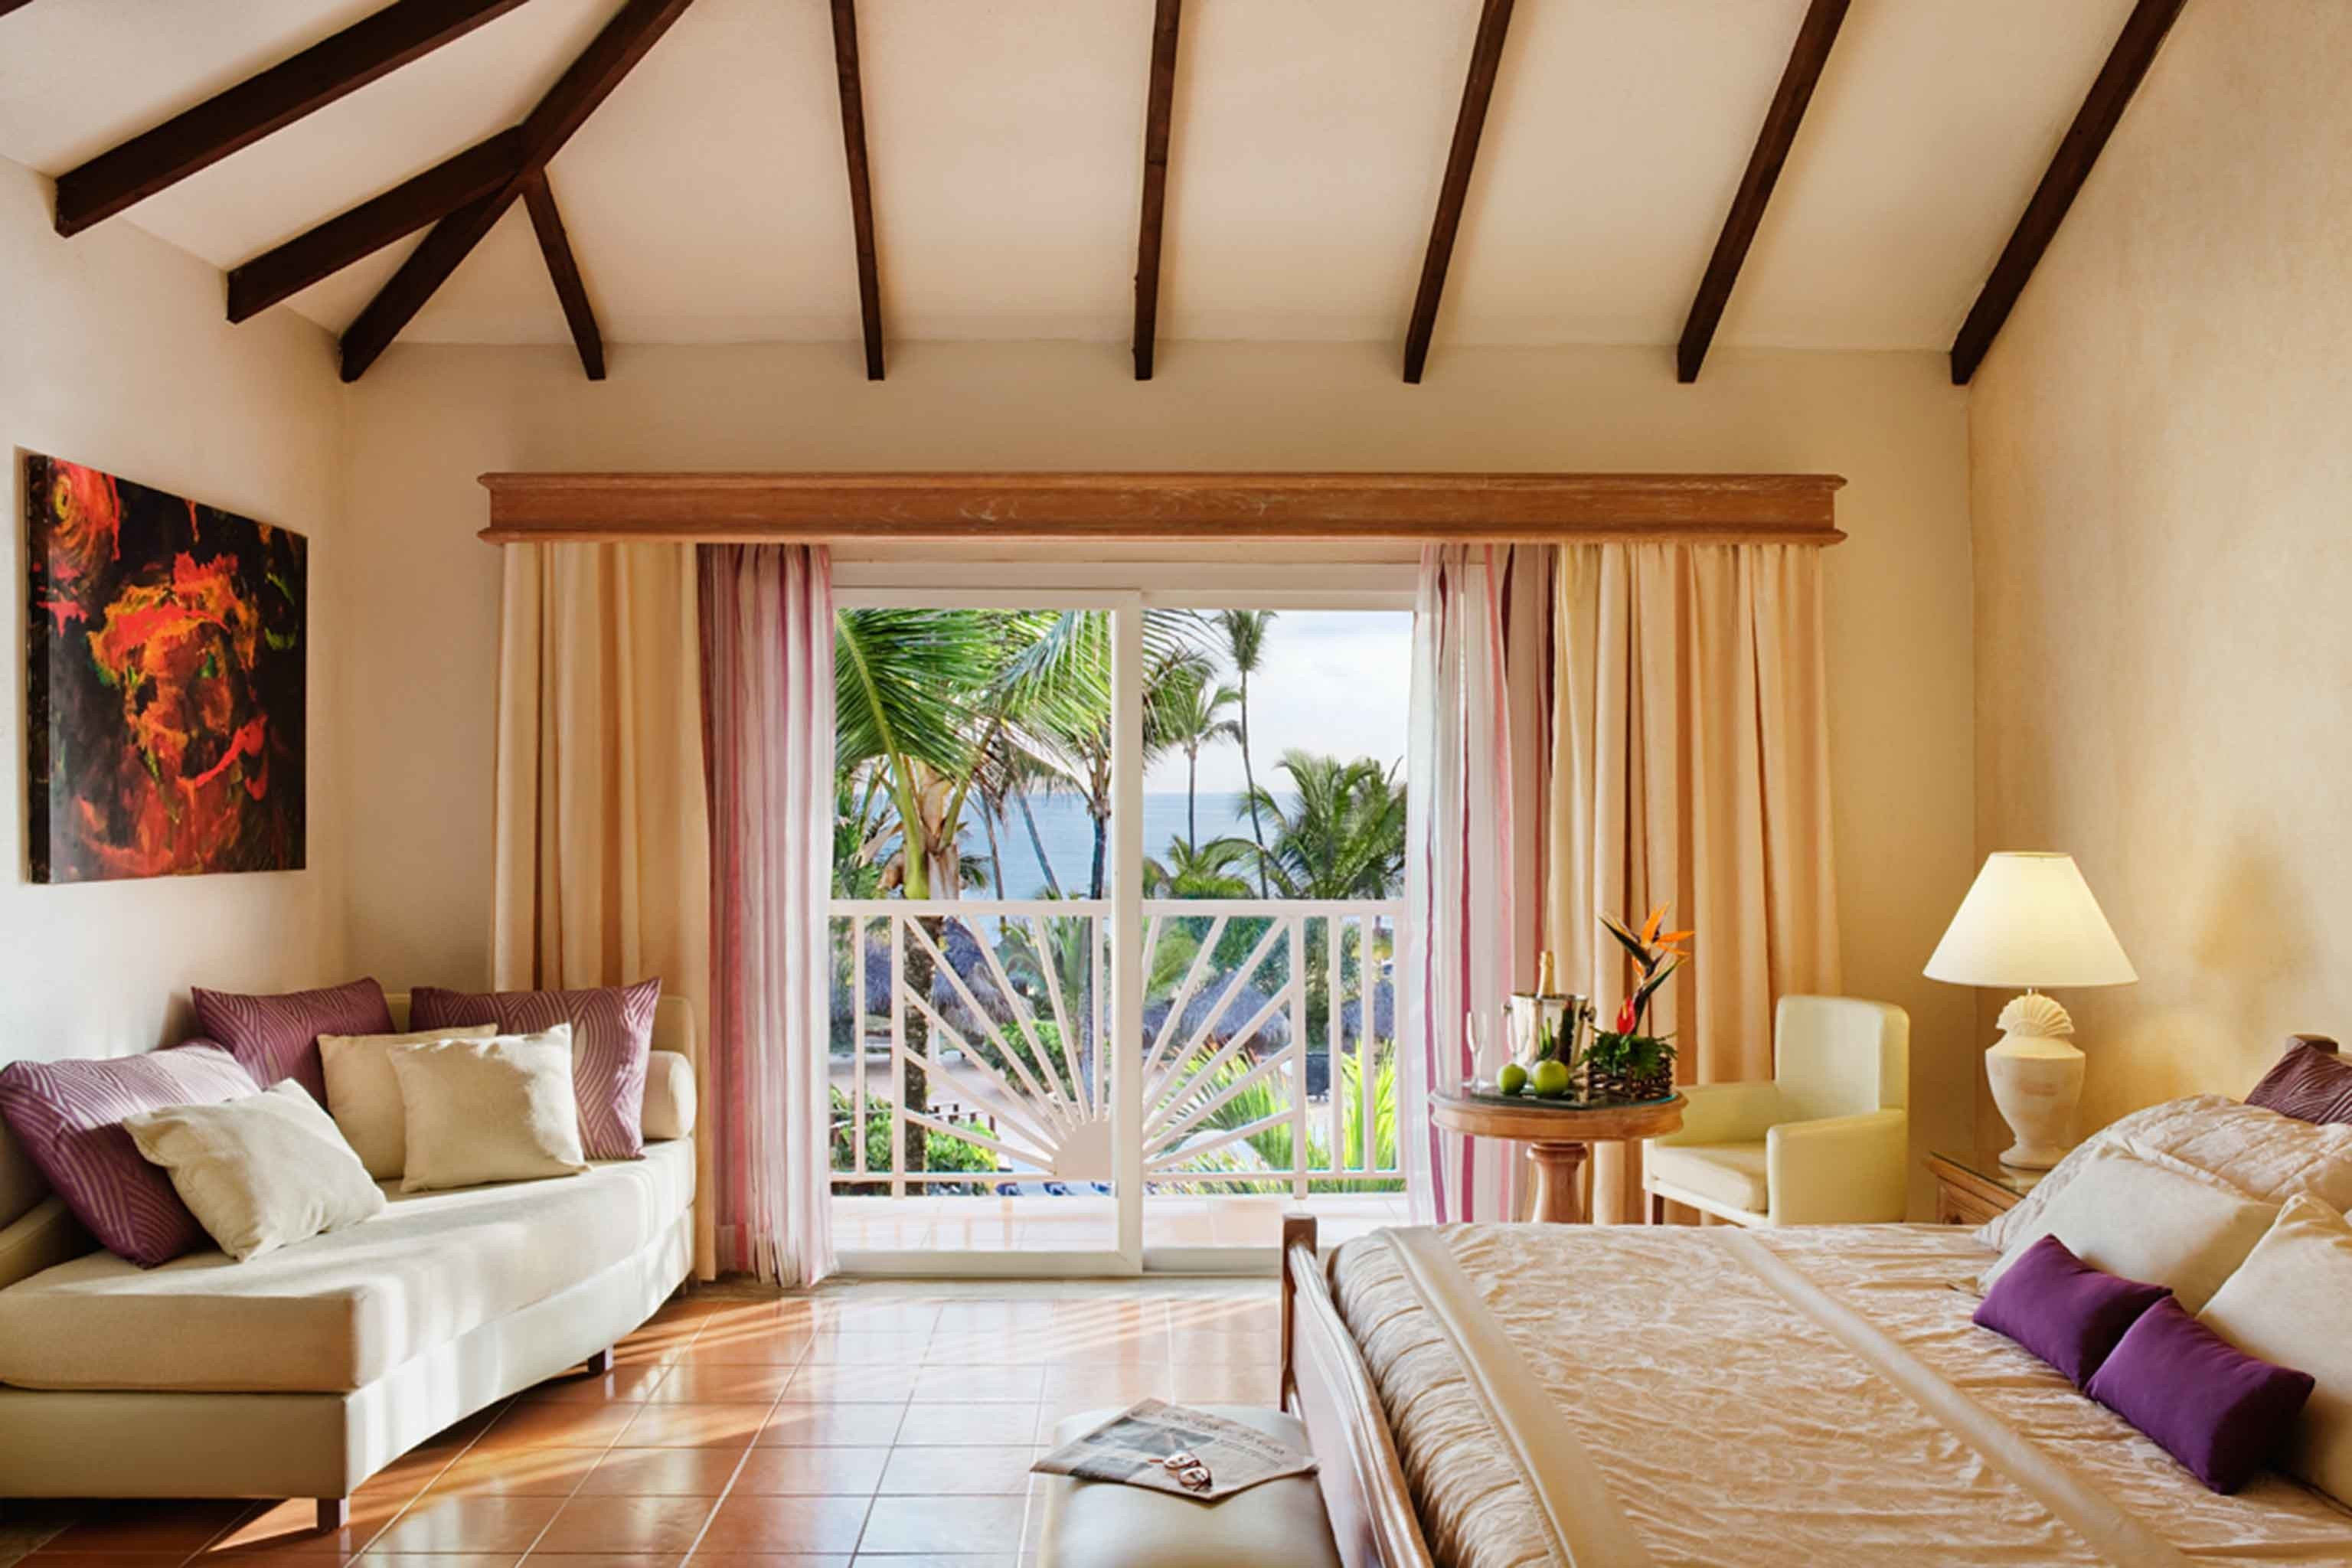 All-Inclusive Resorts Balcony Bedroom Hotels Romance Scenic views Suite indoor wall room sofa floor Living property estate living room decorated cottage home interior design furniture real estate farmhouse Villa ceiling nice colored